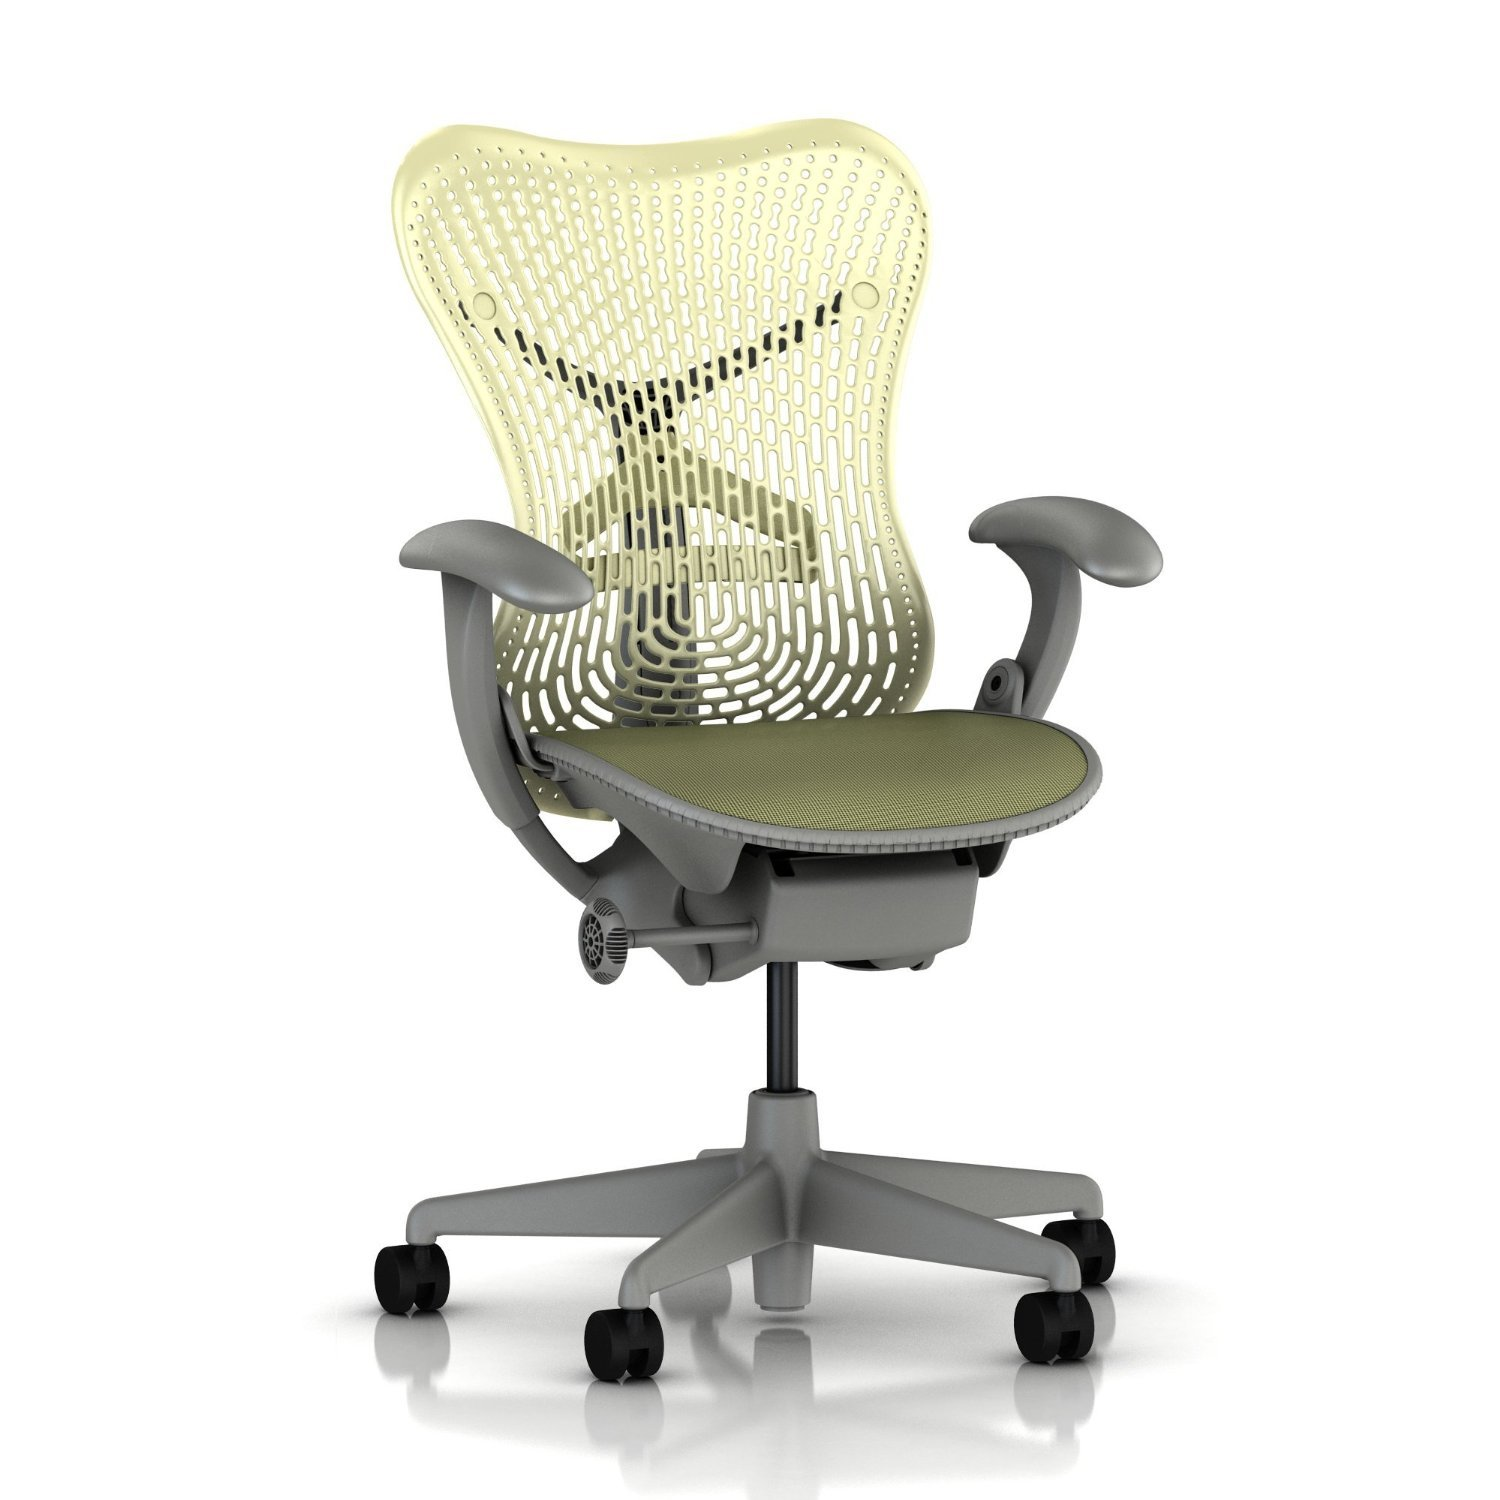 Amazon.com: Herman Miller Mirra Chair Basic Home Office Desk Task ...